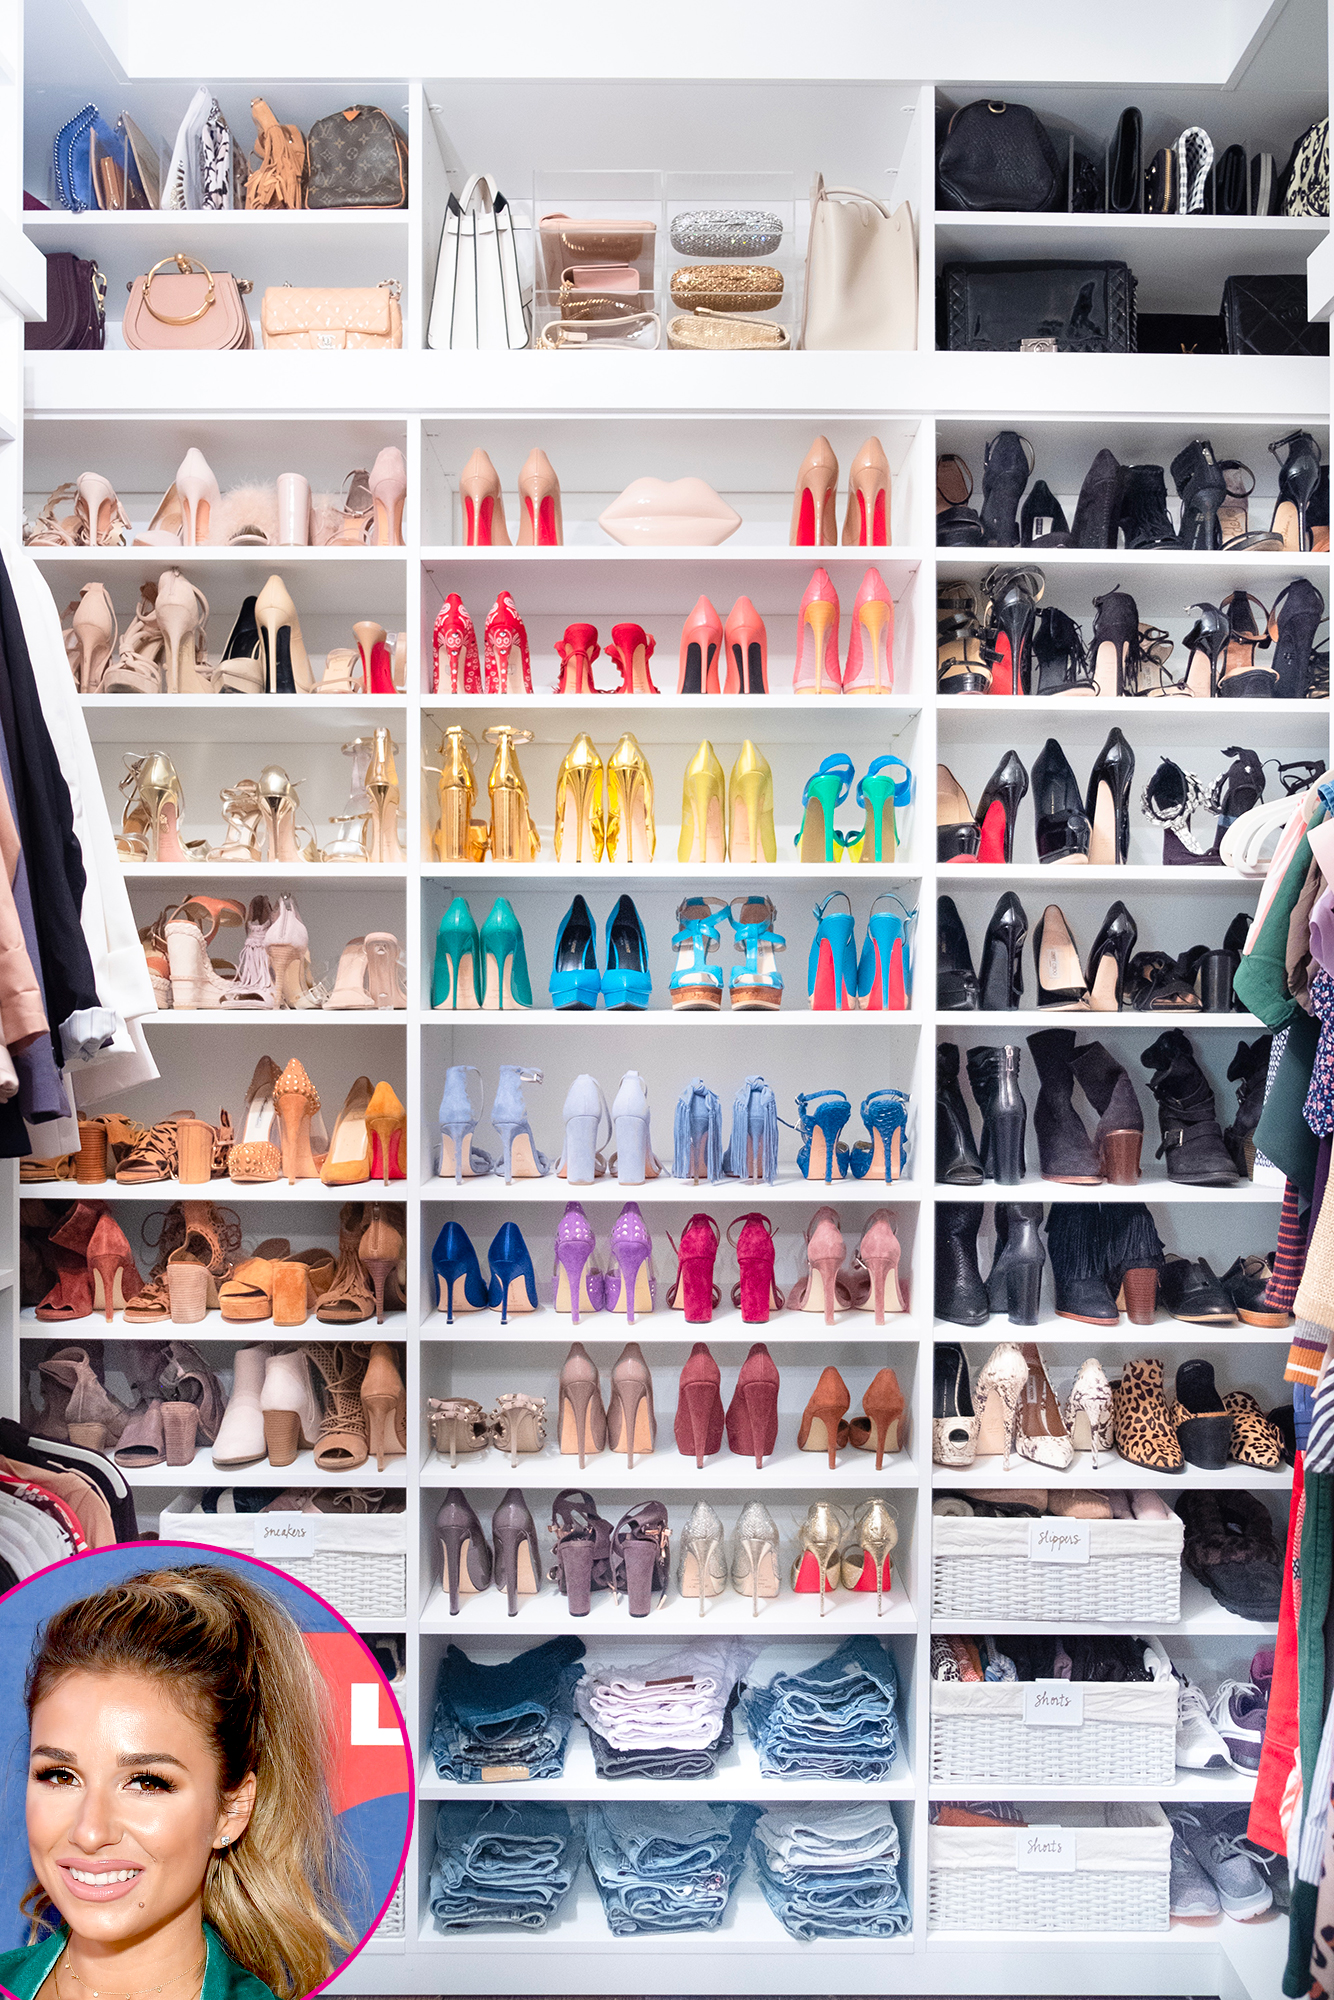 Jessie-James-Decker-Closet - How gorgeous is Jessie James Decker 's shoe closet!? Shearer and Teplin explained their method for color madness to House Beautiful in August 2018.